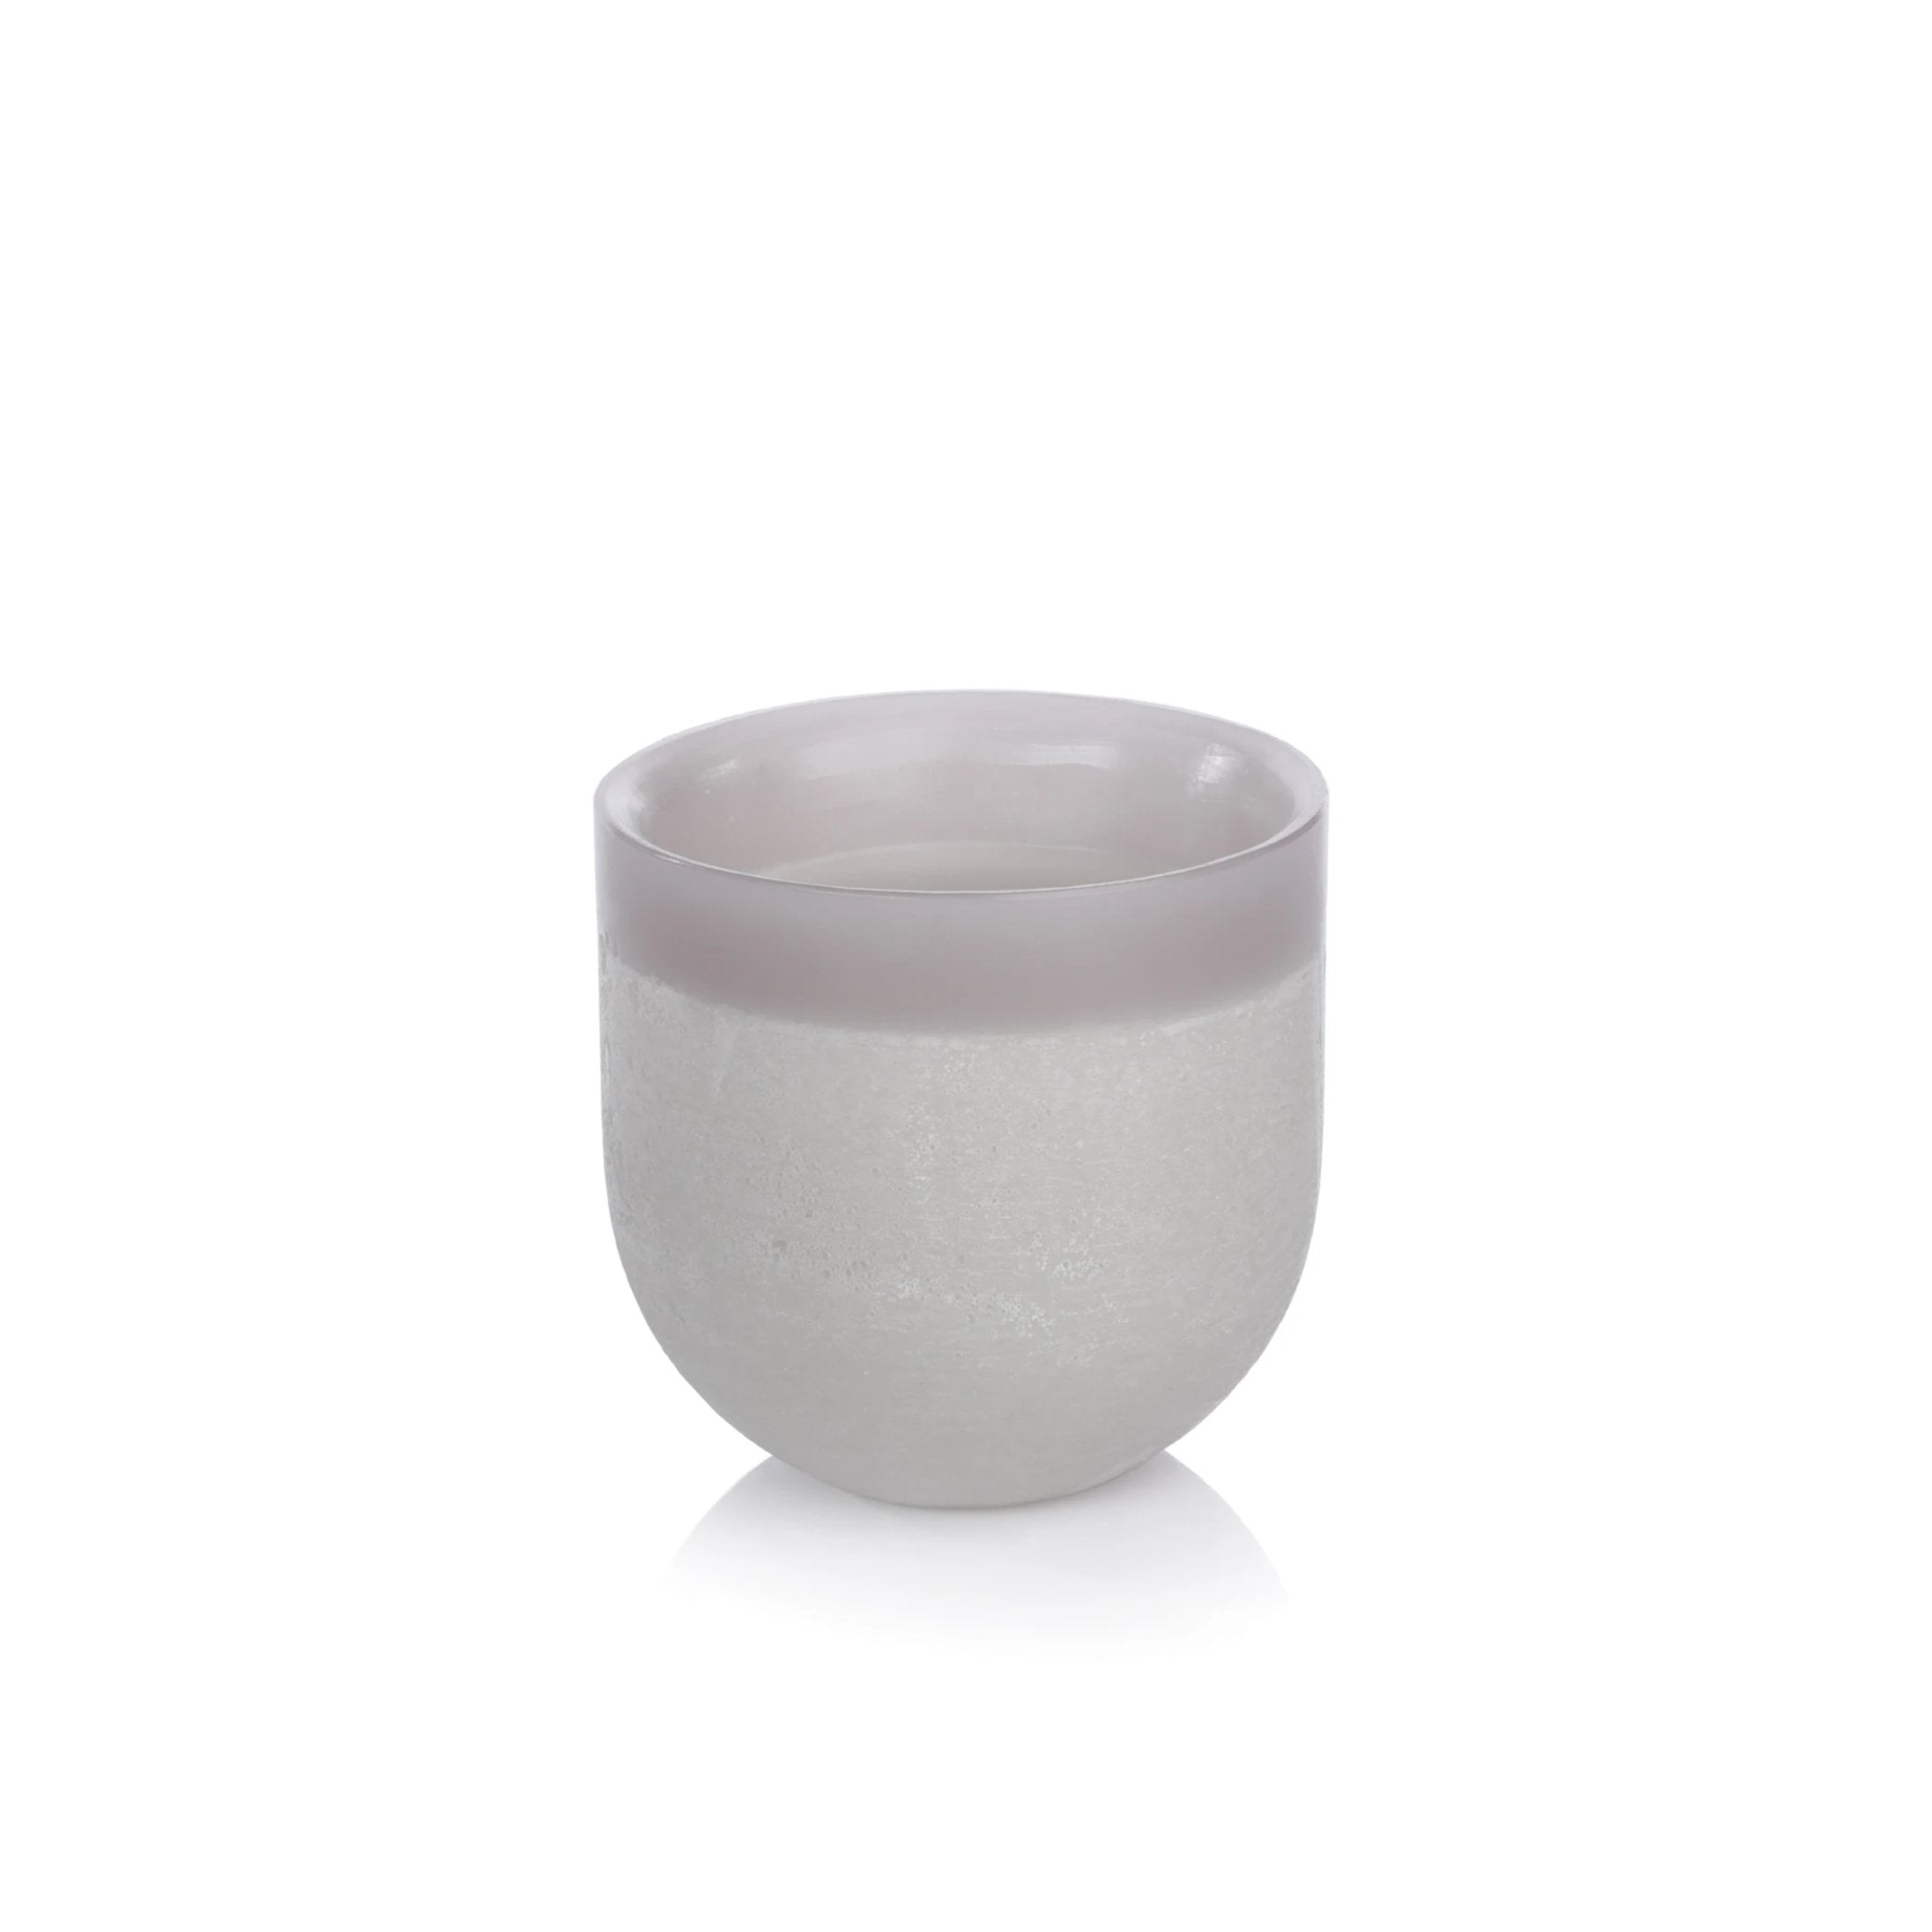 Shoreline Scented Candle - Tobacco Flower / Gray - CARLYLE AVENUE